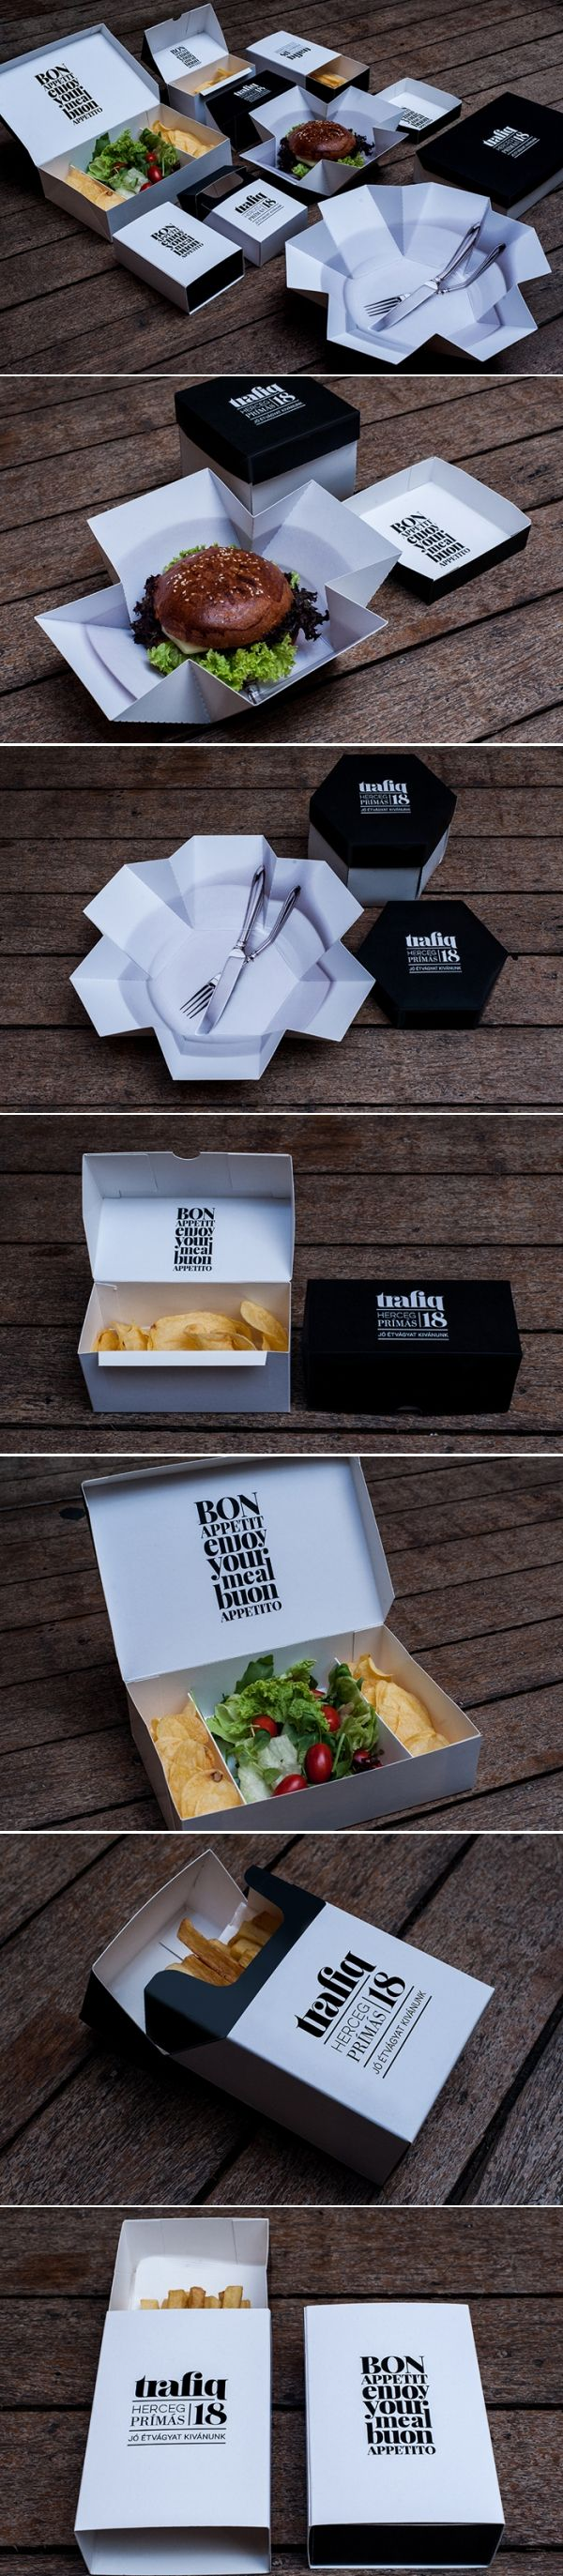 LOVE! Fast Food packaging that is too cool!